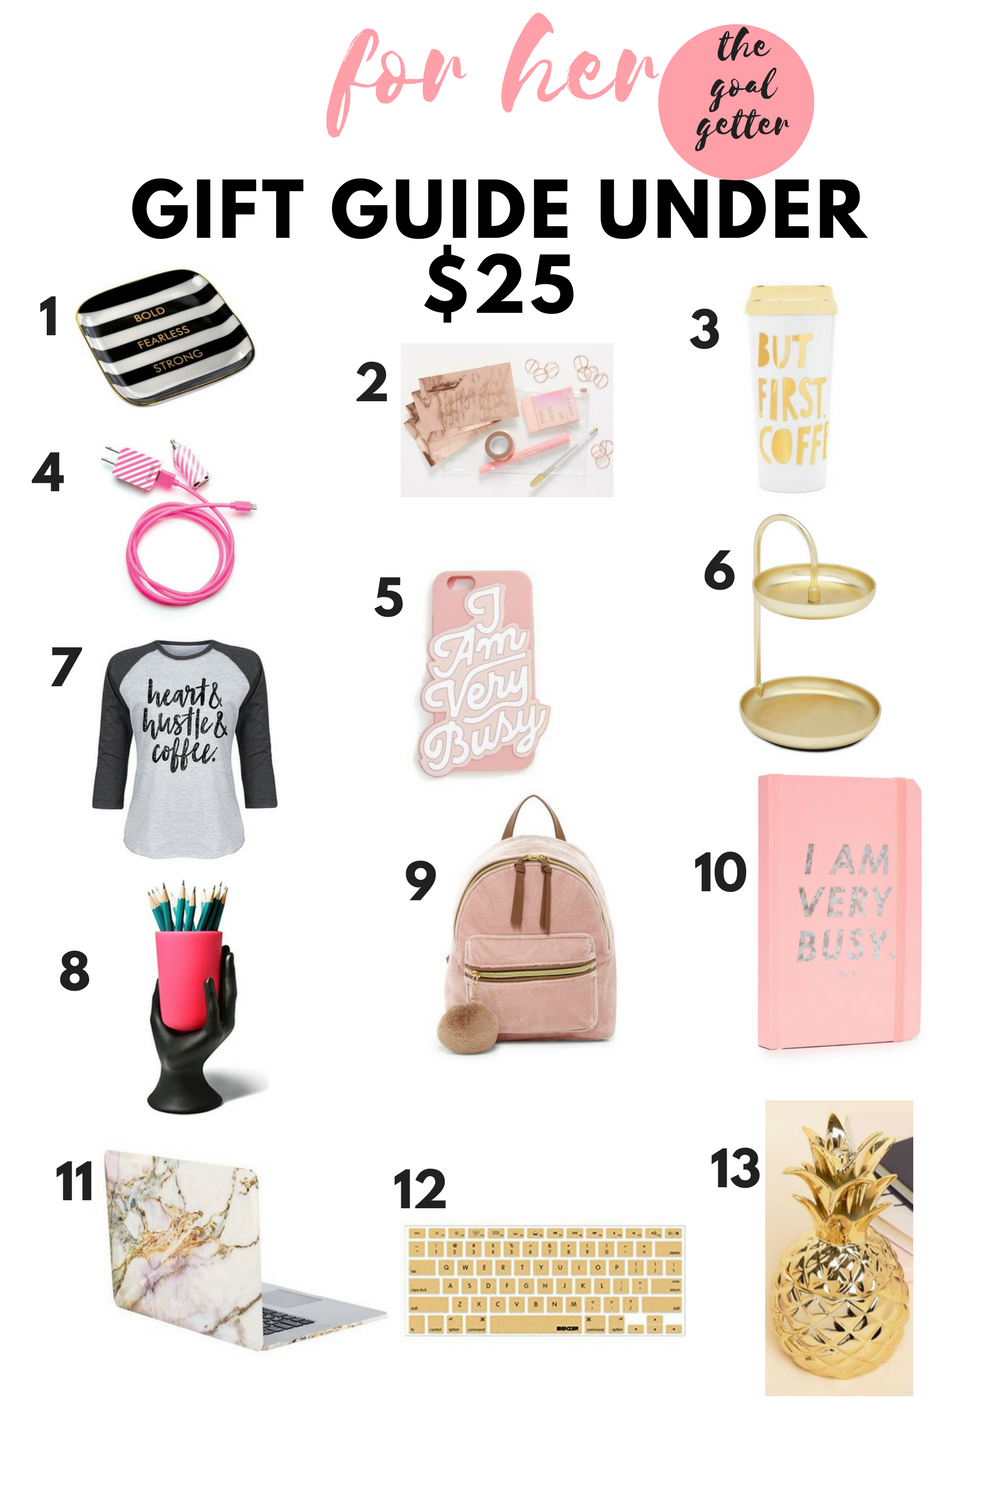 gift guide under $25 for her personality type - the goal getter